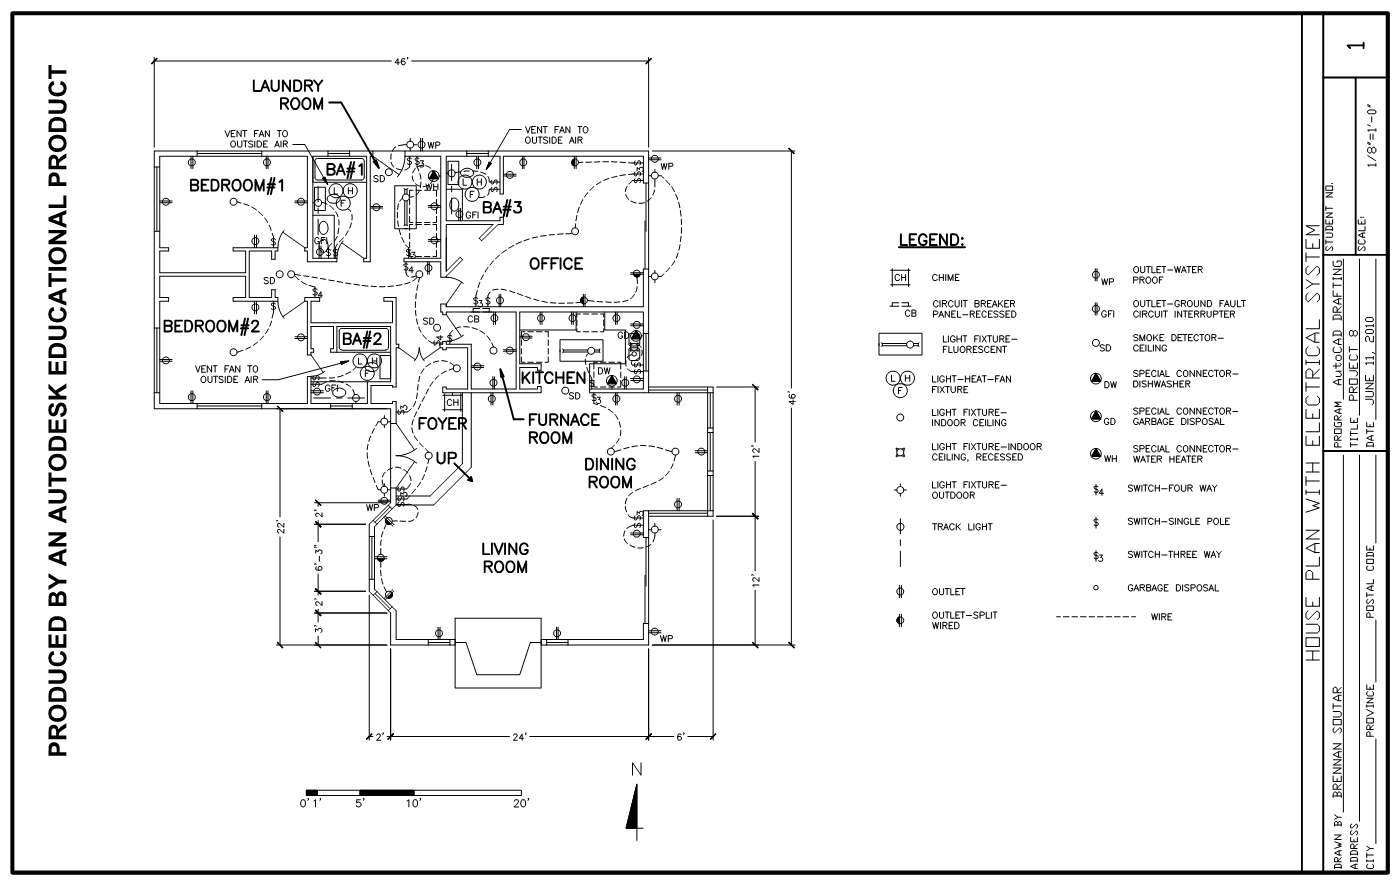 An architectural floor plan, showing placements of various electrical items  such as outlets, lights, and switches.